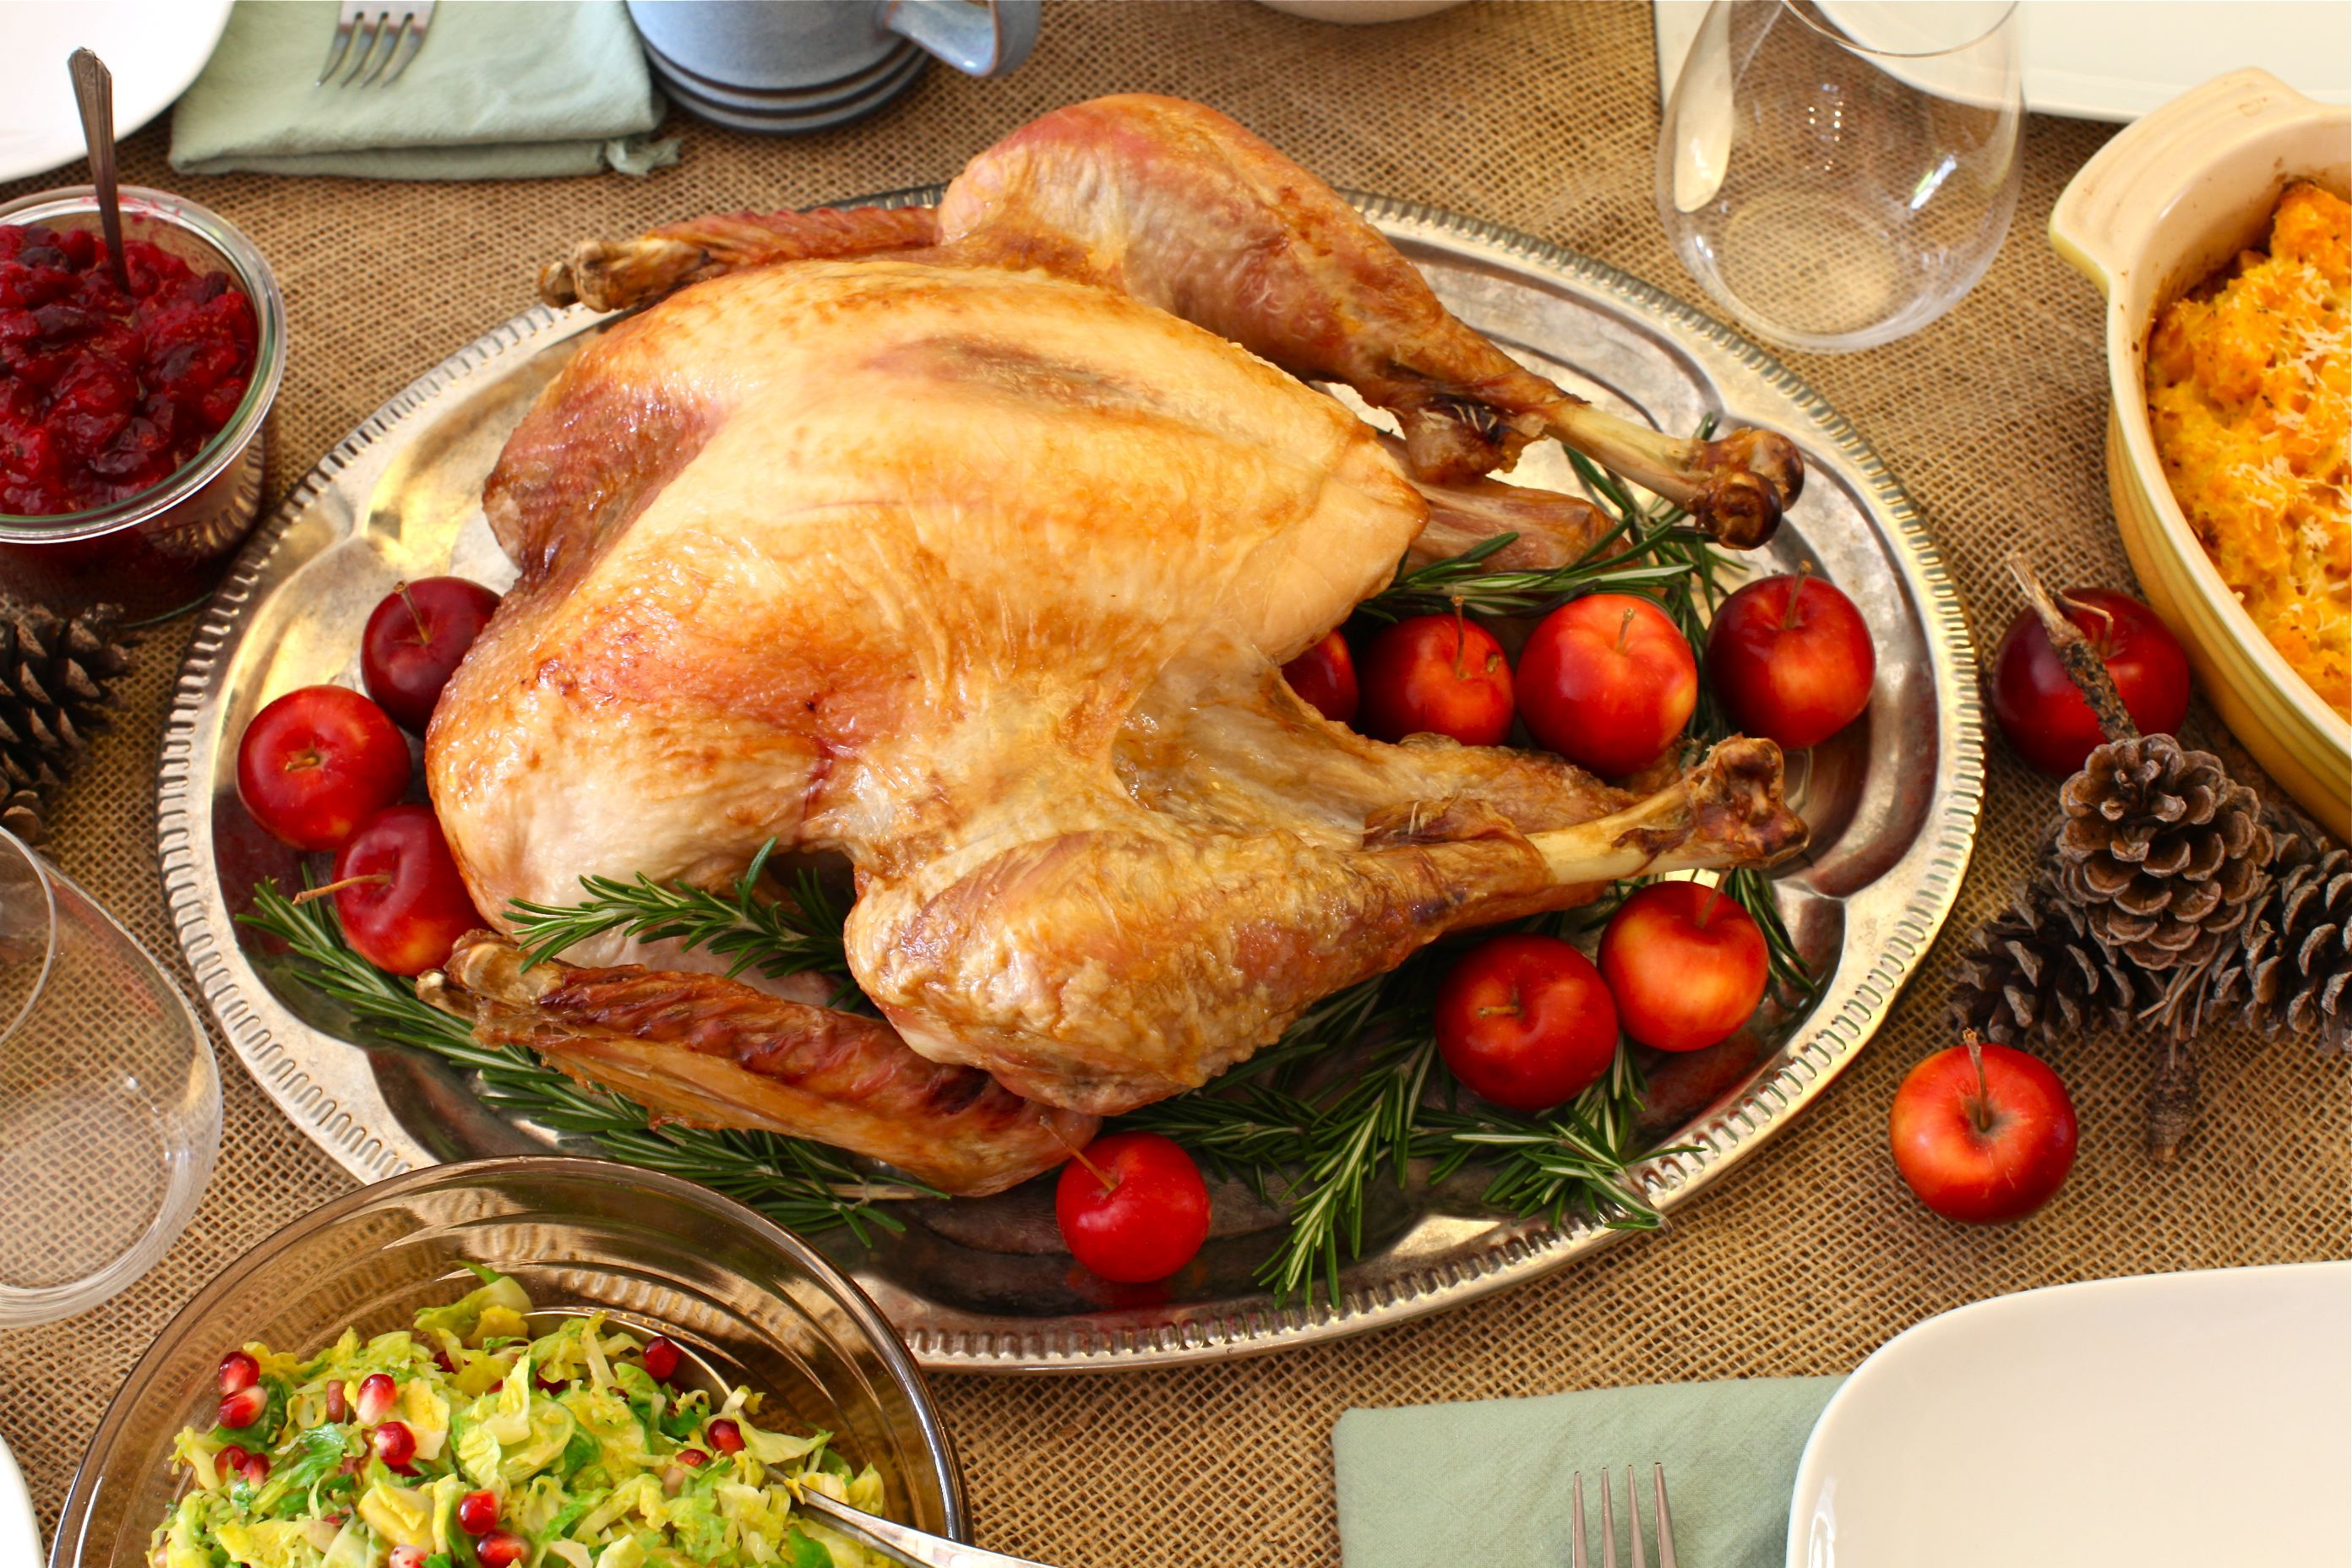 te brined roast turkey basic roast turkey recipe real simple ...